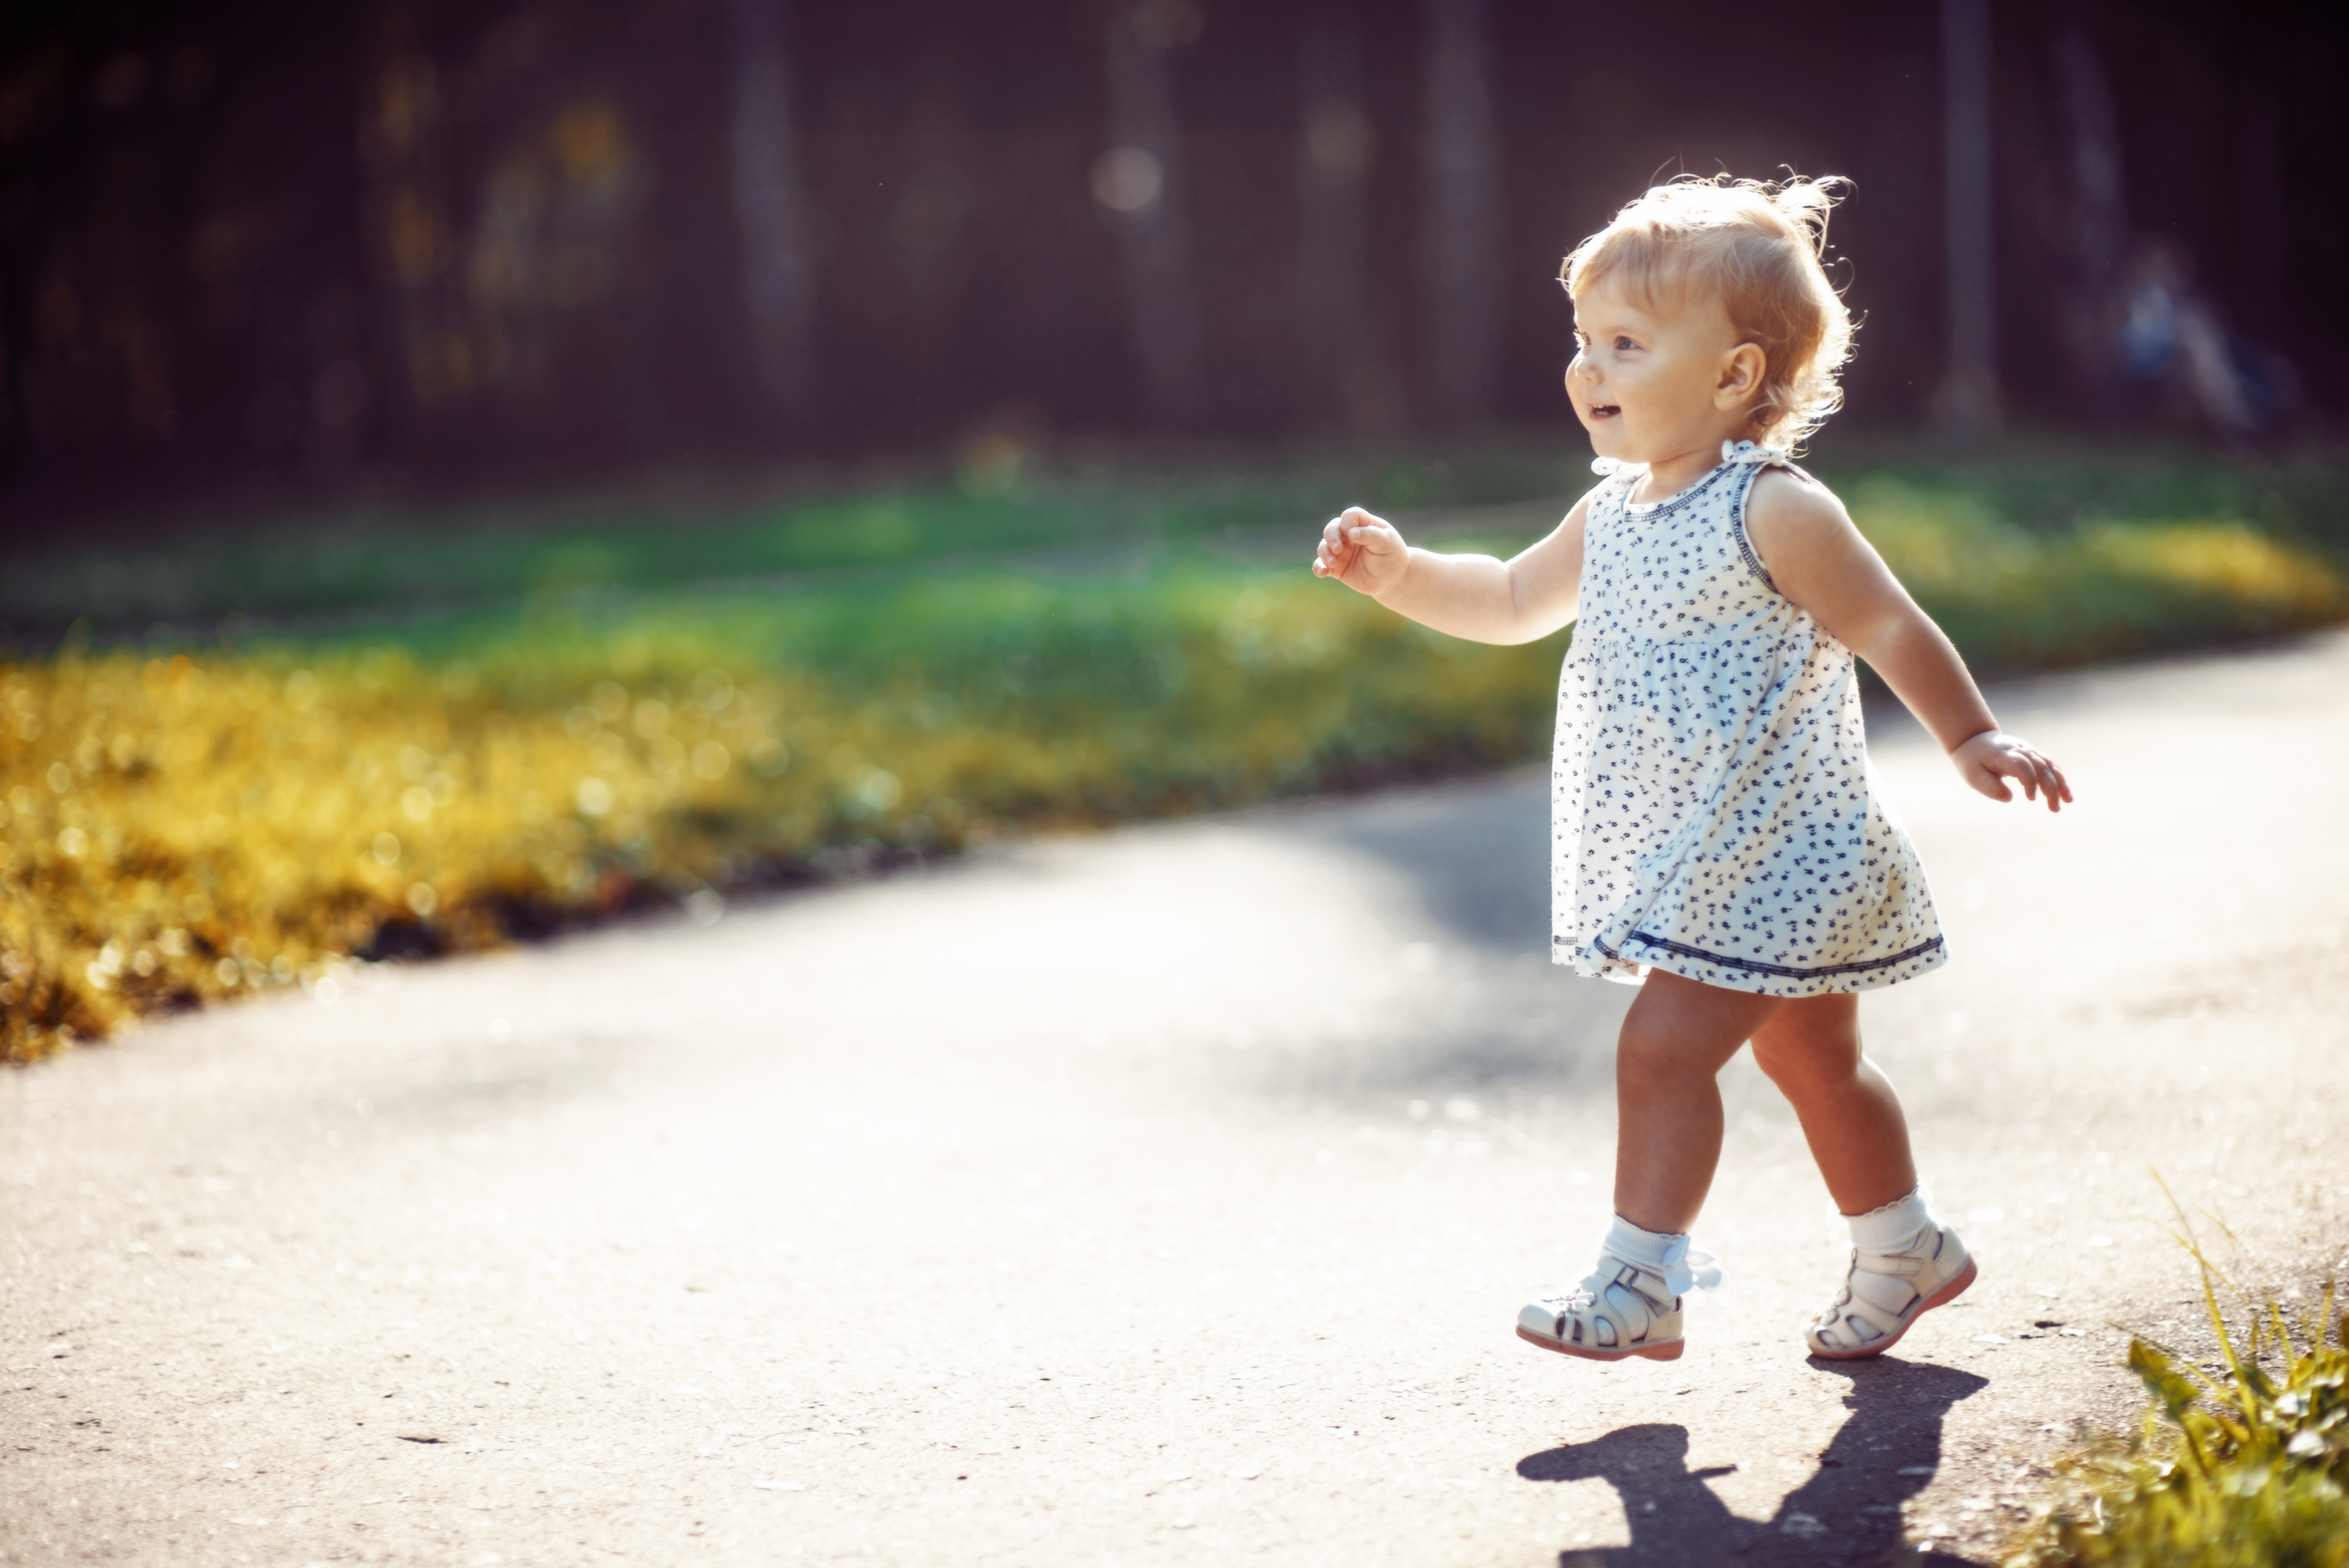 The Benefits of Walking for Children